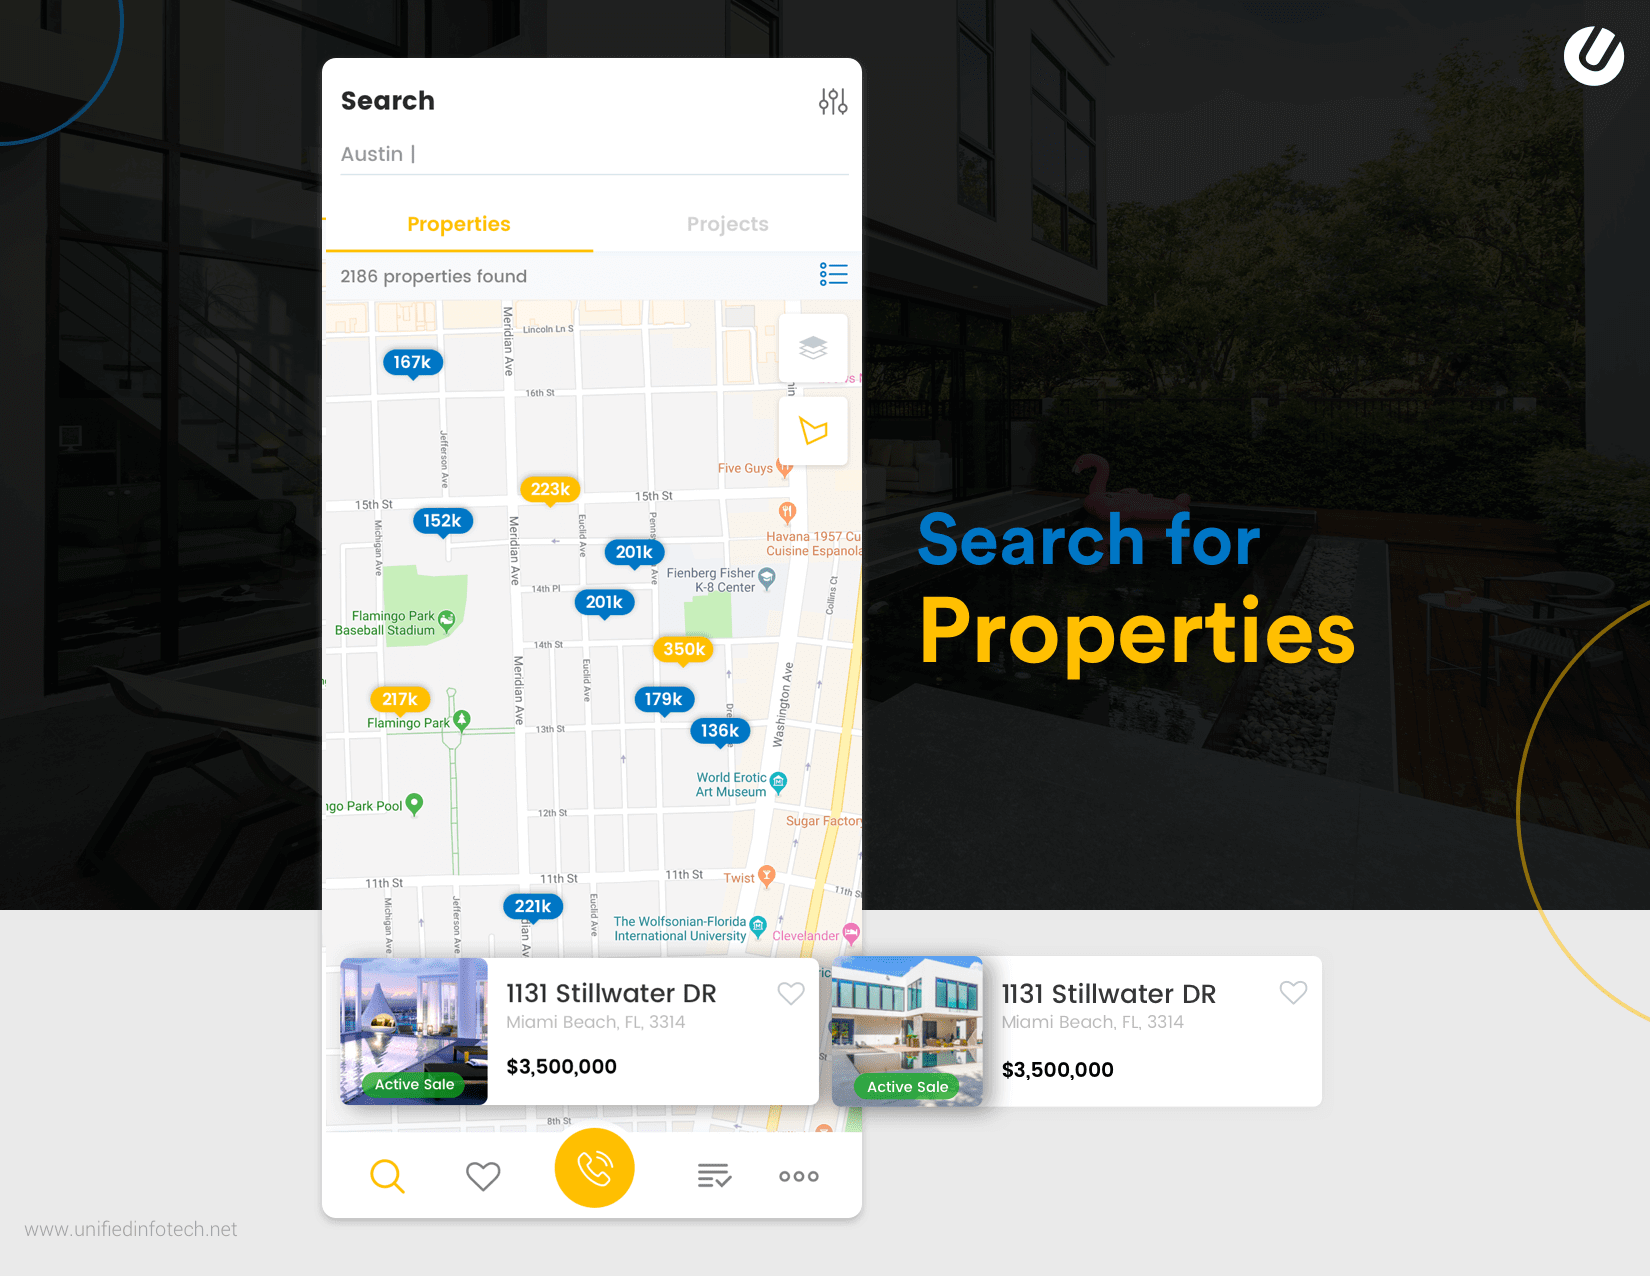 create a relate estate app with property searching feature